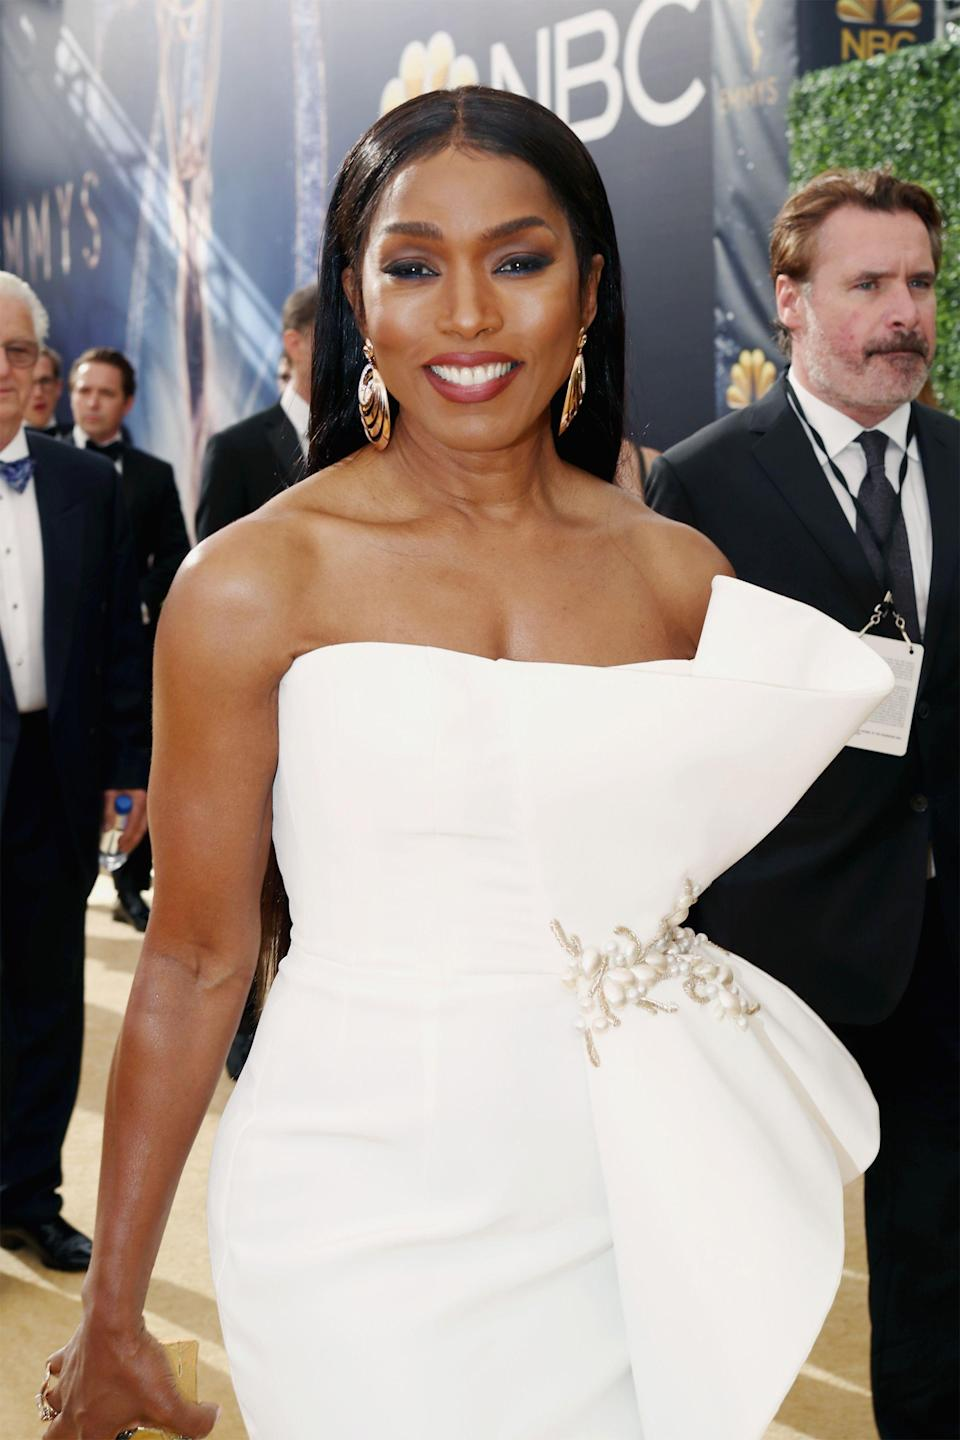 """<p>Angela Bassett's Emmys look was so beautiful, it almost hurt. If you're looking for us, we'll be at home practicing <a href=""""https://www.refinery29.com/en-us/2018/09/210188/angela-bassett-age-skin-beauty-secrets-emmys"""" rel=""""nofollow noopener"""" target=""""_blank"""" data-ylk=""""slk:her skin-care routine"""" class=""""link rapid-noclick-resp"""">her skin-care routine</a> in hopes of looking this good.</p><span class=""""copyright"""">Photo: Rich Polk/Getty Images. </span>"""